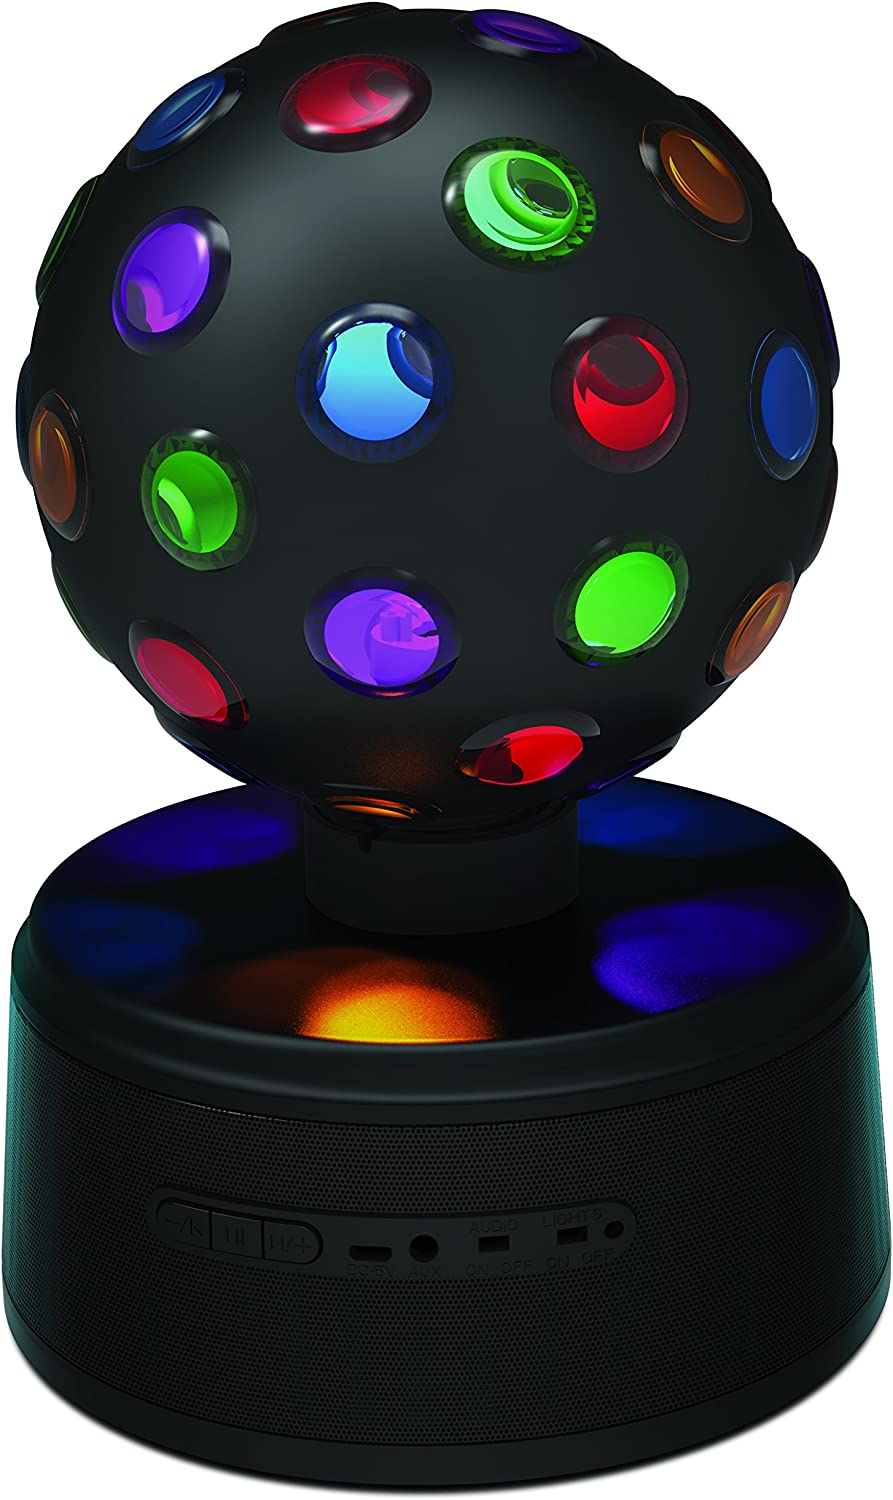 Sharper Image SBT651BK Universal Rechargeable Bluetooth Disco Ball Speaker with LED Color Changing Lights